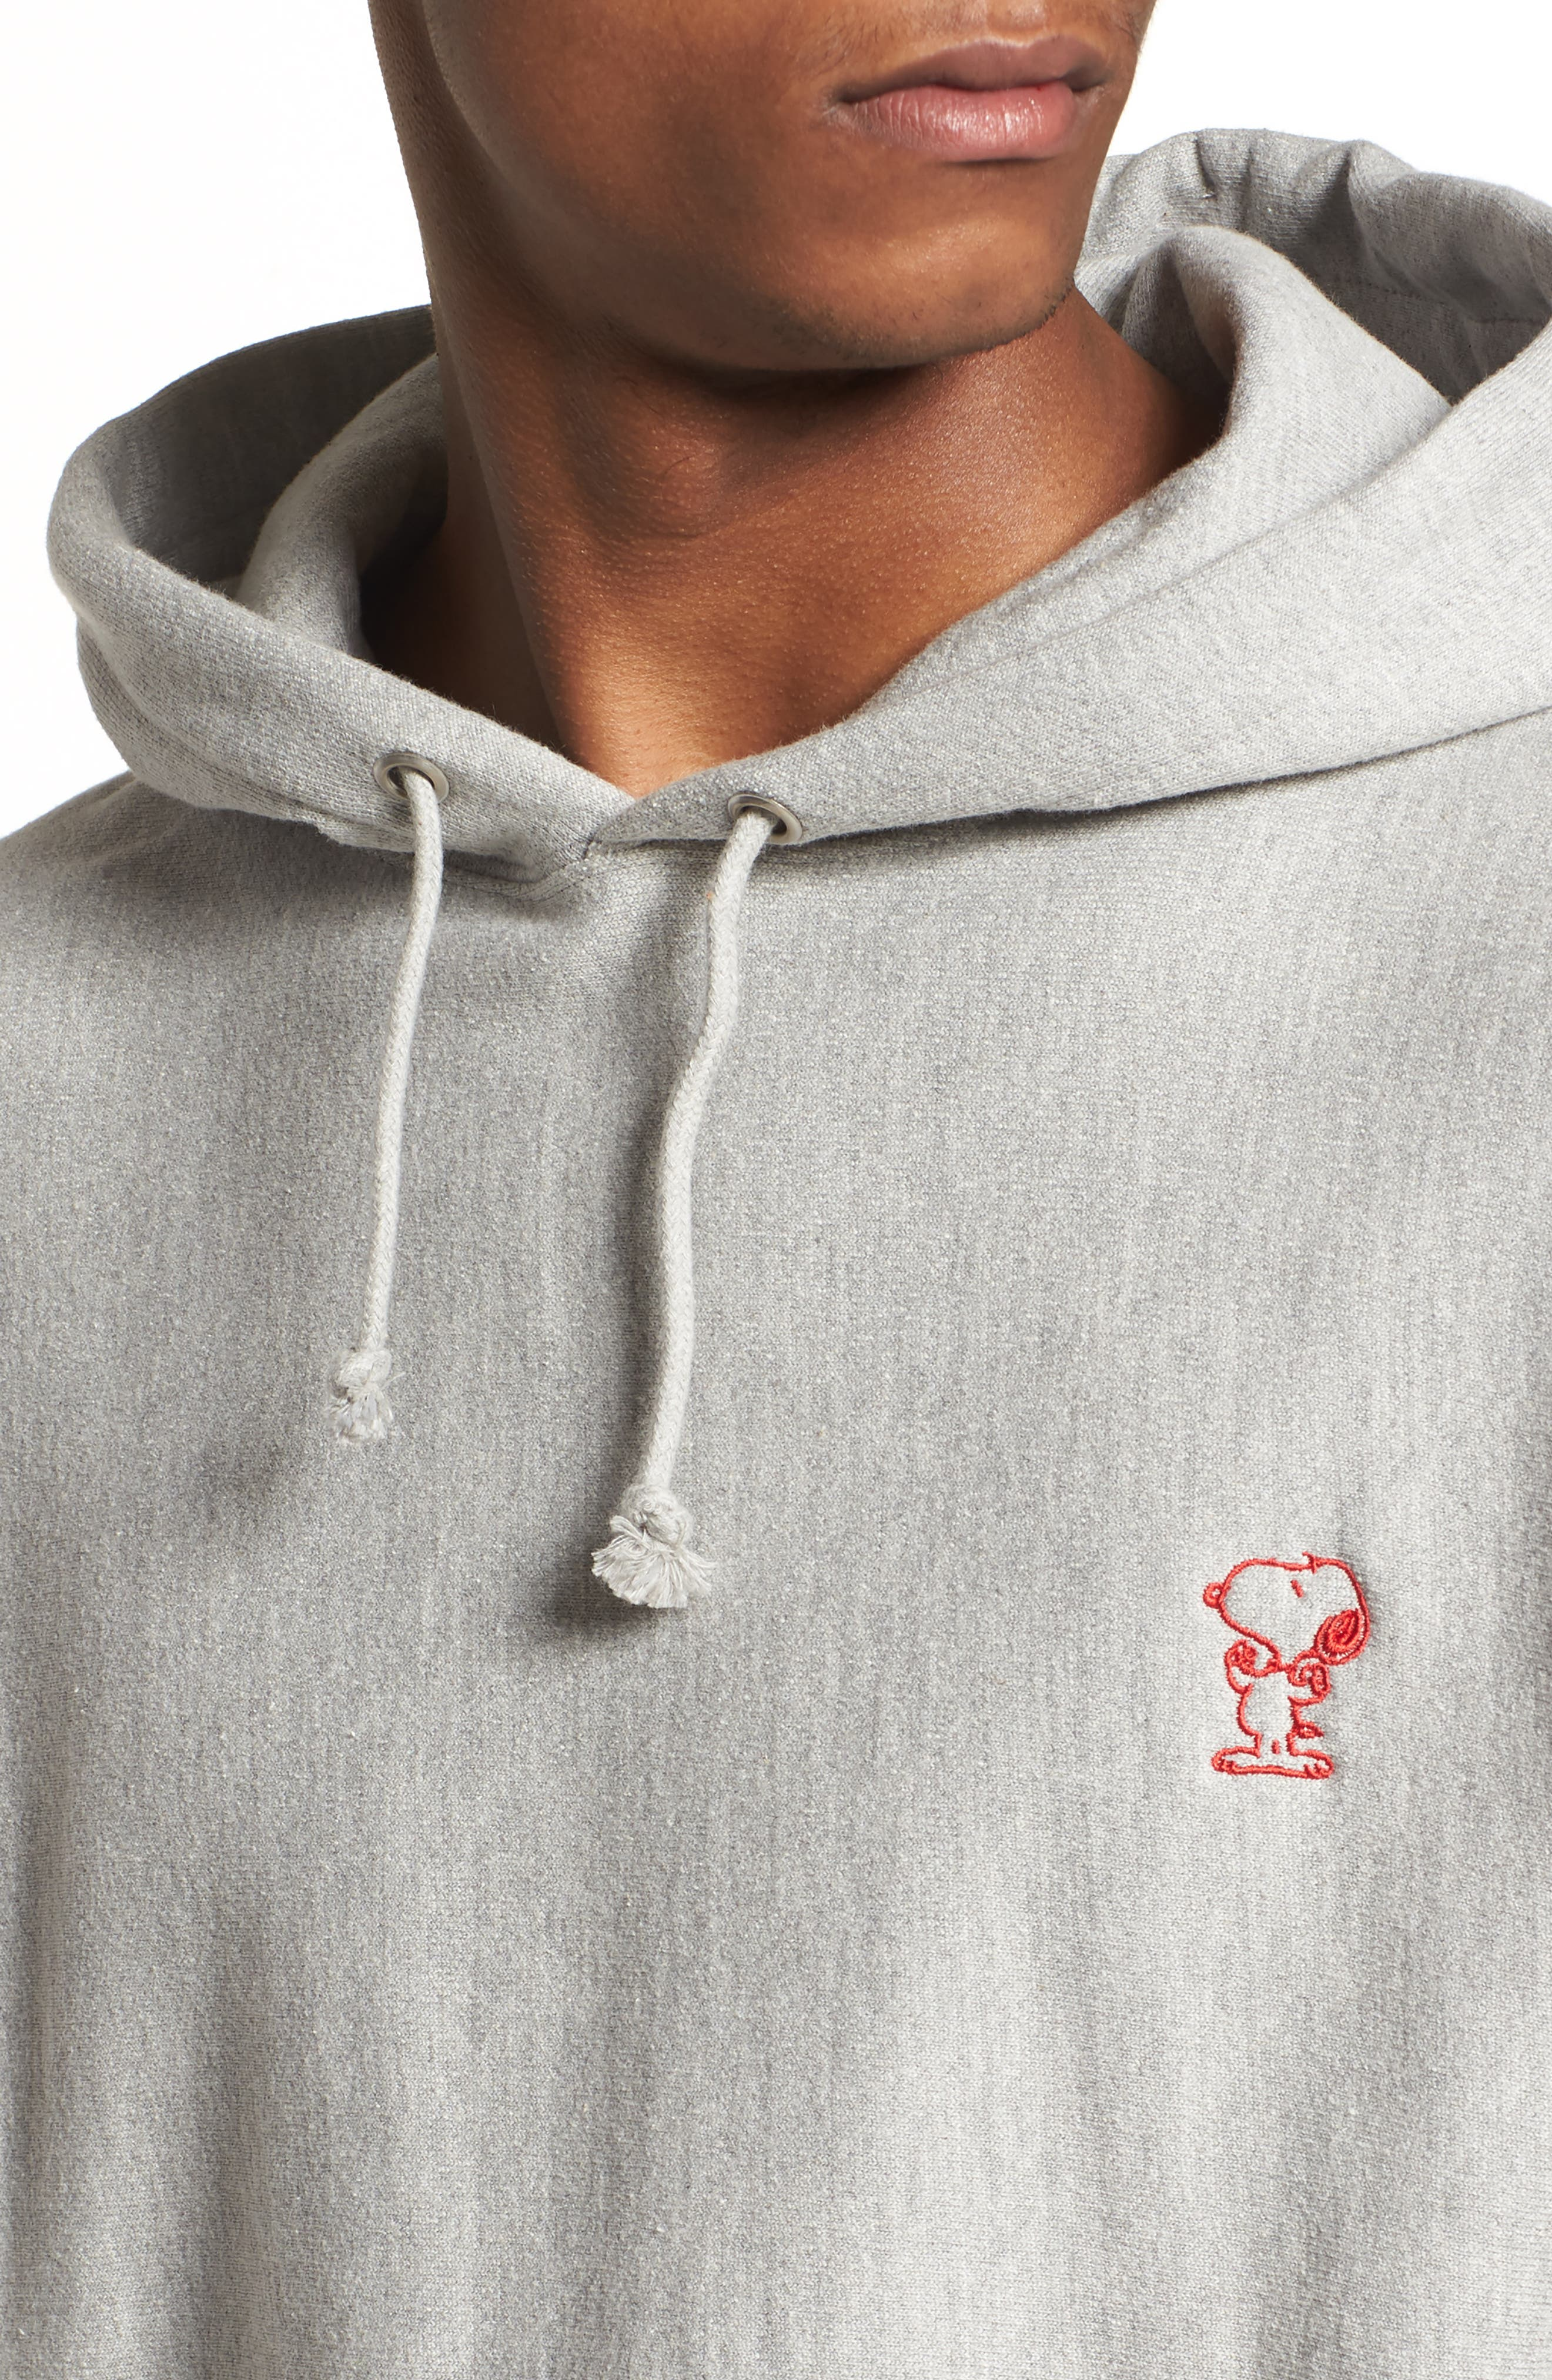 Snoopy Unisex Pullover Hoodie,                             Alternate thumbnail 5, color,                             Oxford Grey